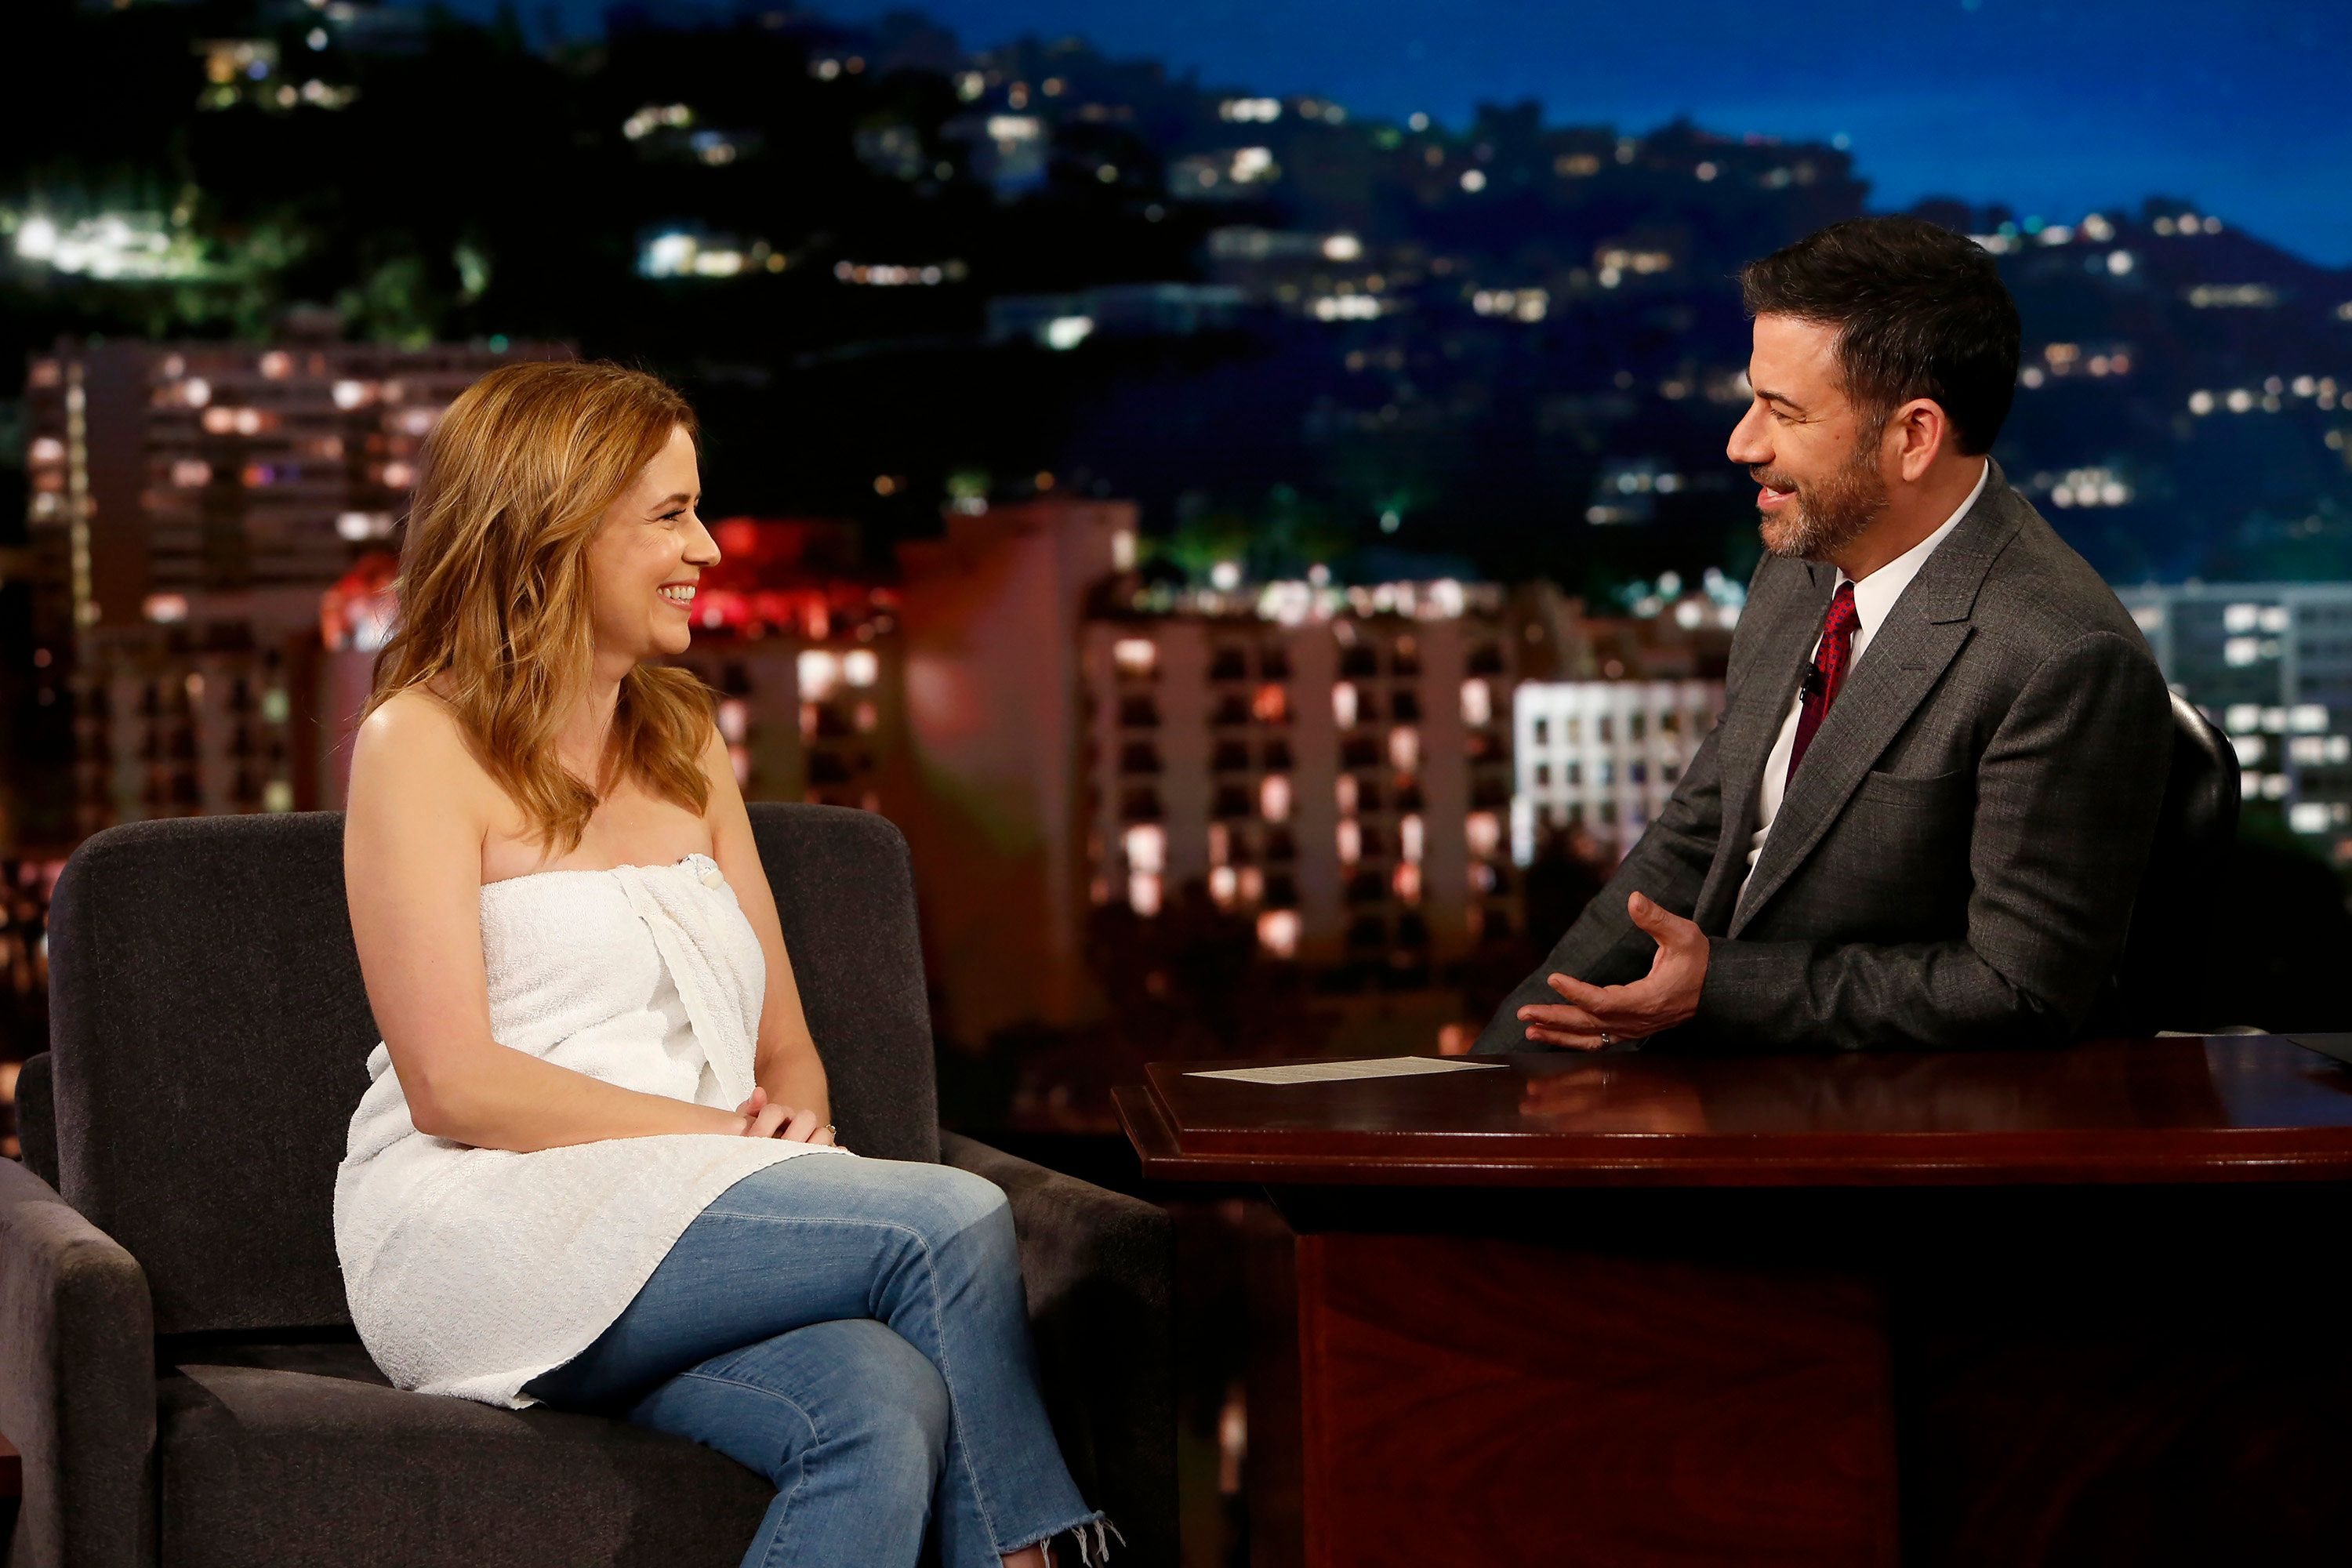 The Office star Jenna Fischer appears on talk show in towel